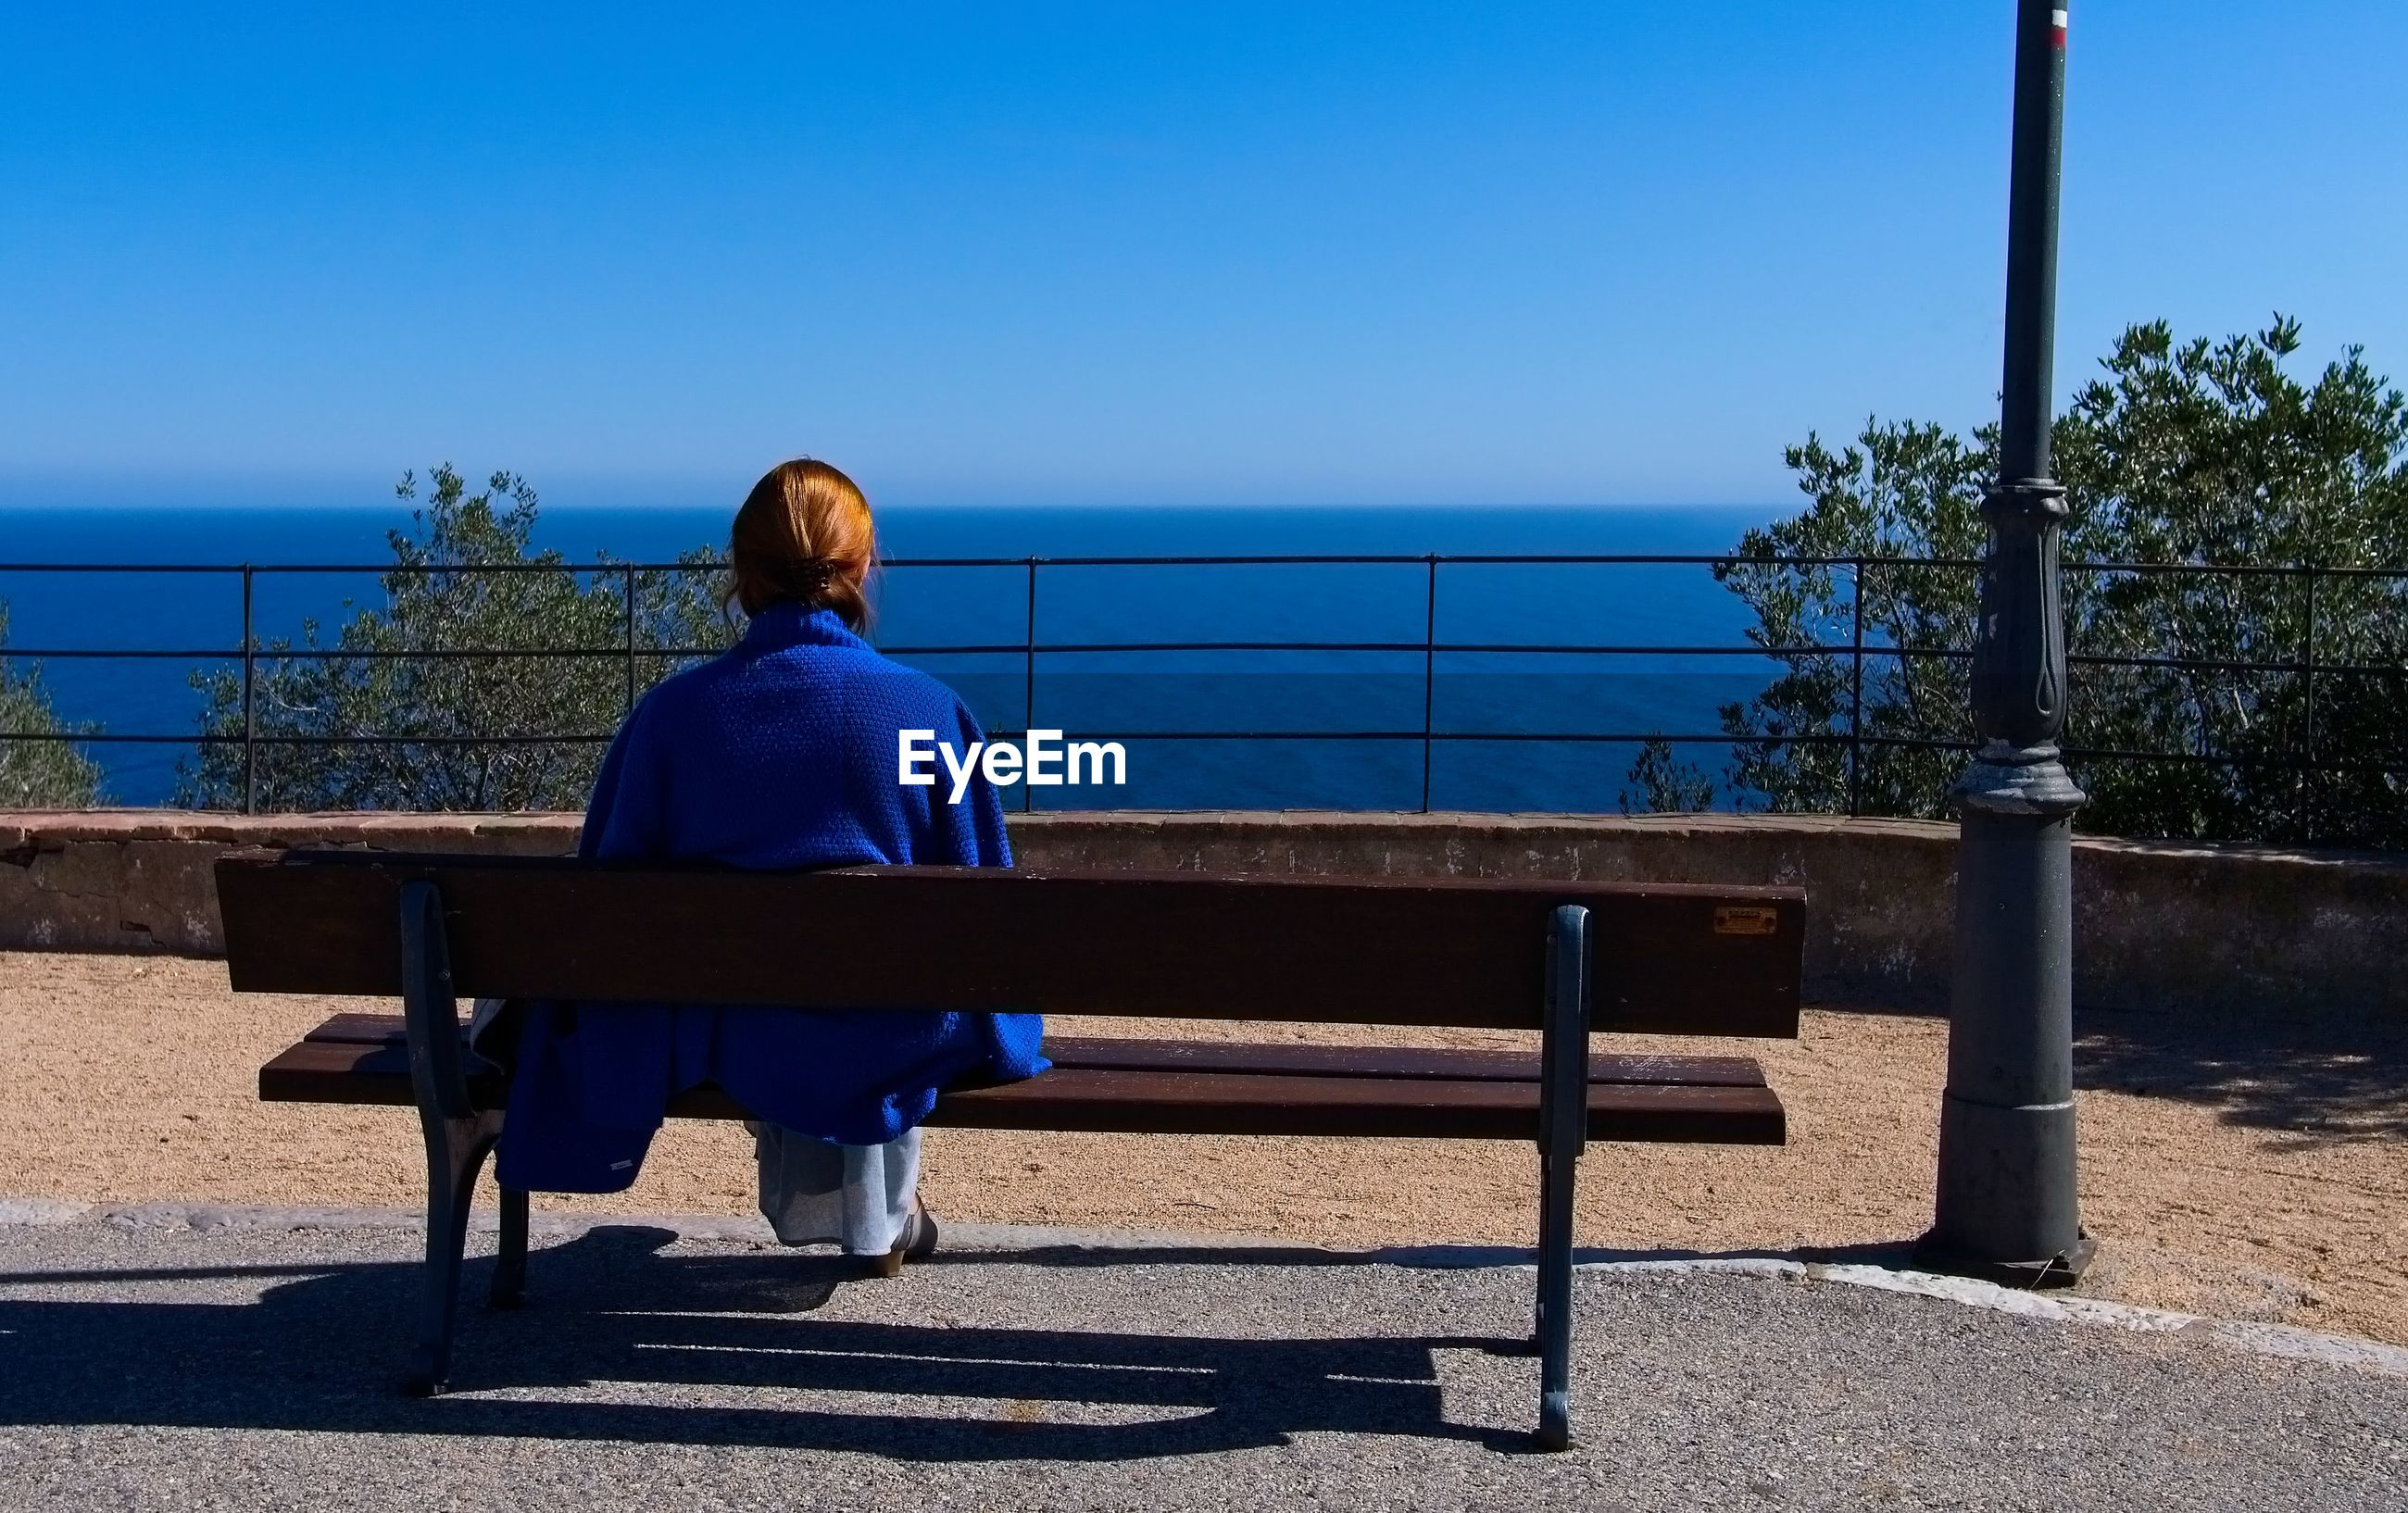 REAR VIEW OF WOMAN SITTING ON BENCH AGAINST SEA